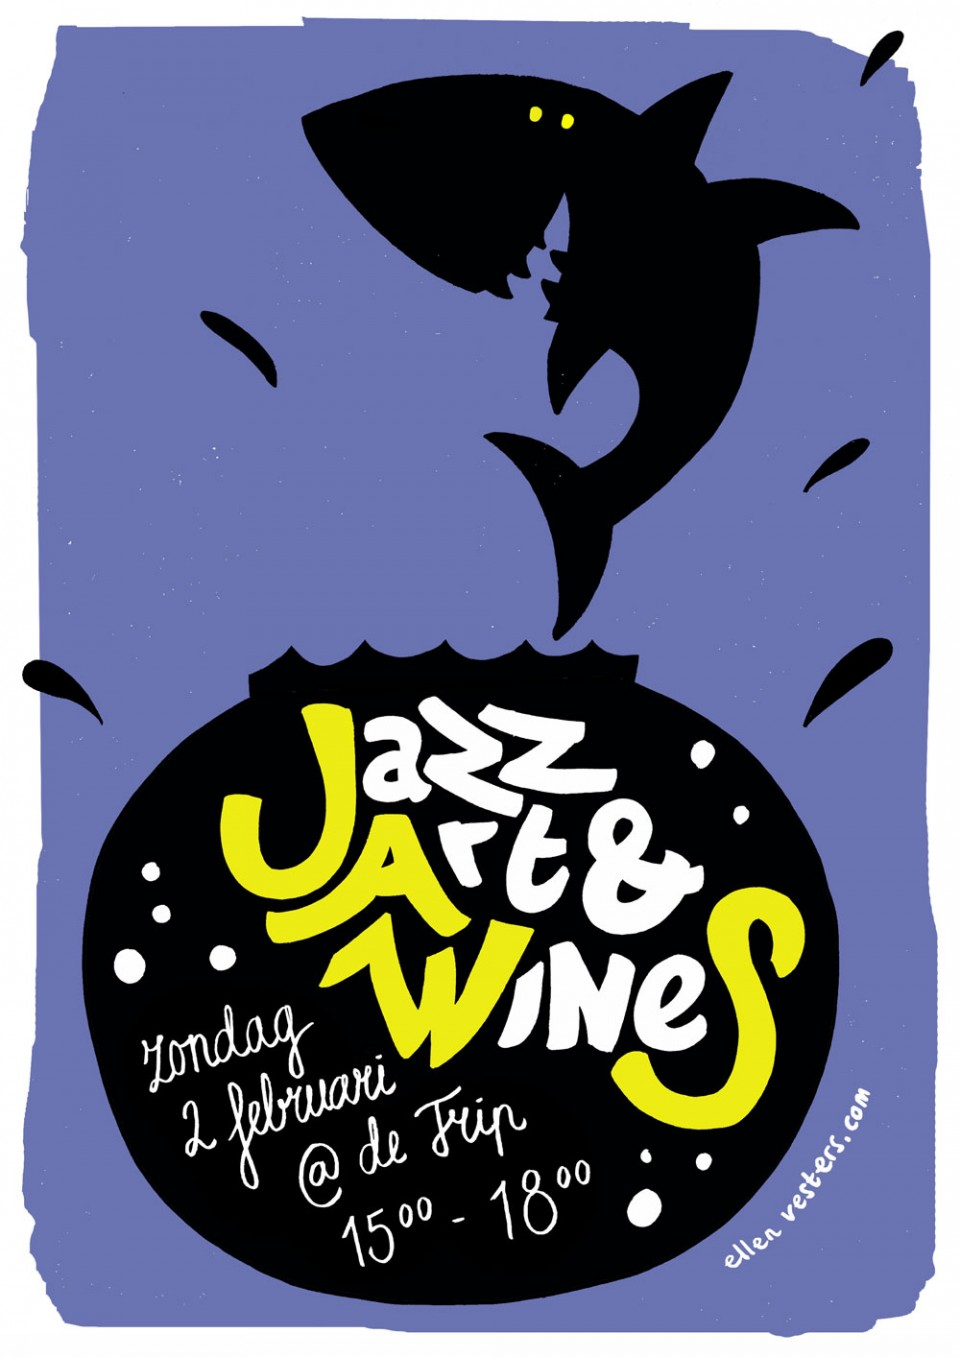 JAWS Jazz Art WineS Festival in Utrecht - poster design by Ellen Vesters